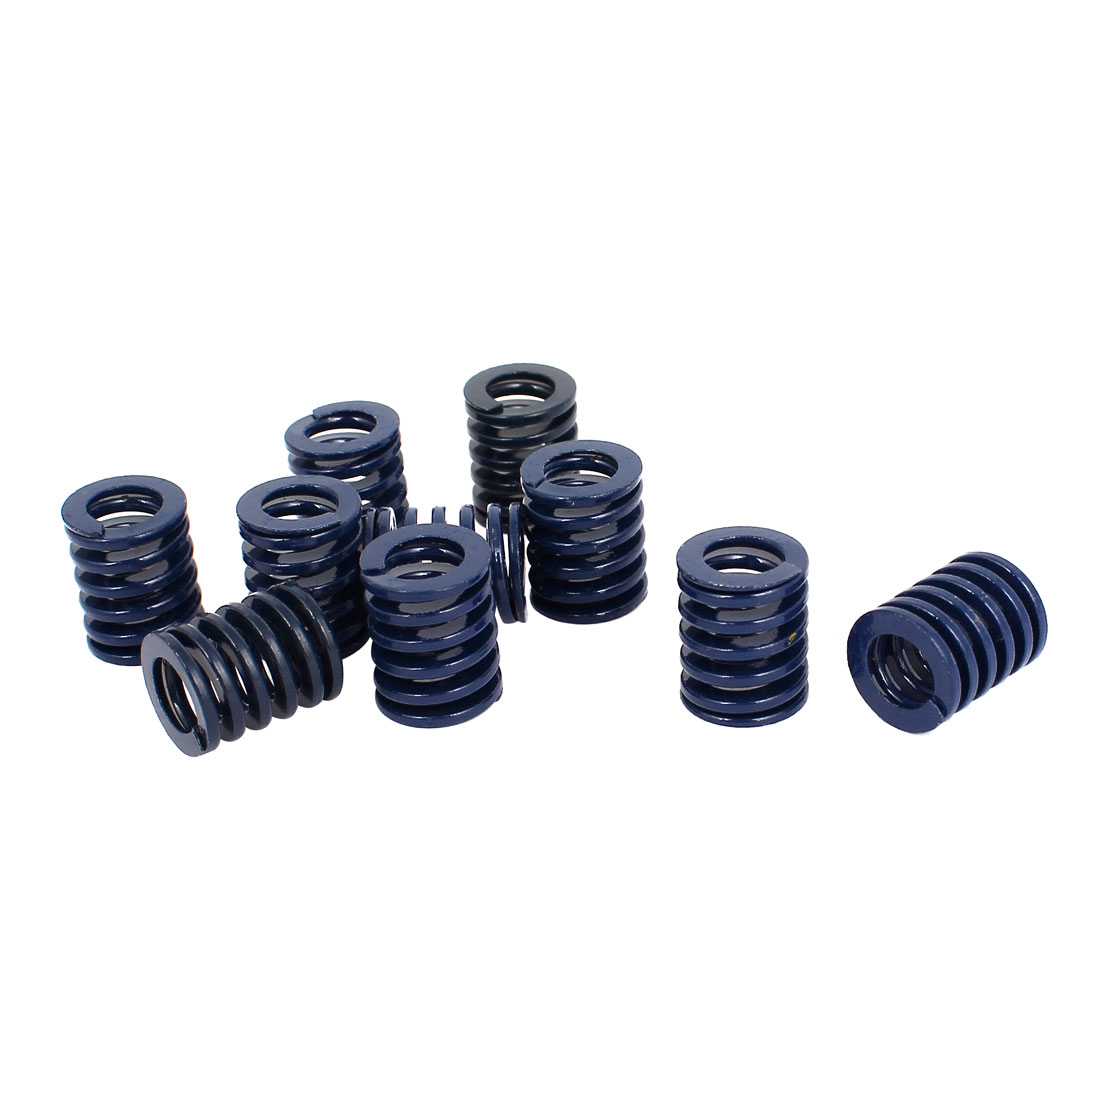 16mm OD 20mm Long Light Load Stamping Compression Mold Die Spring Blue 10pcs